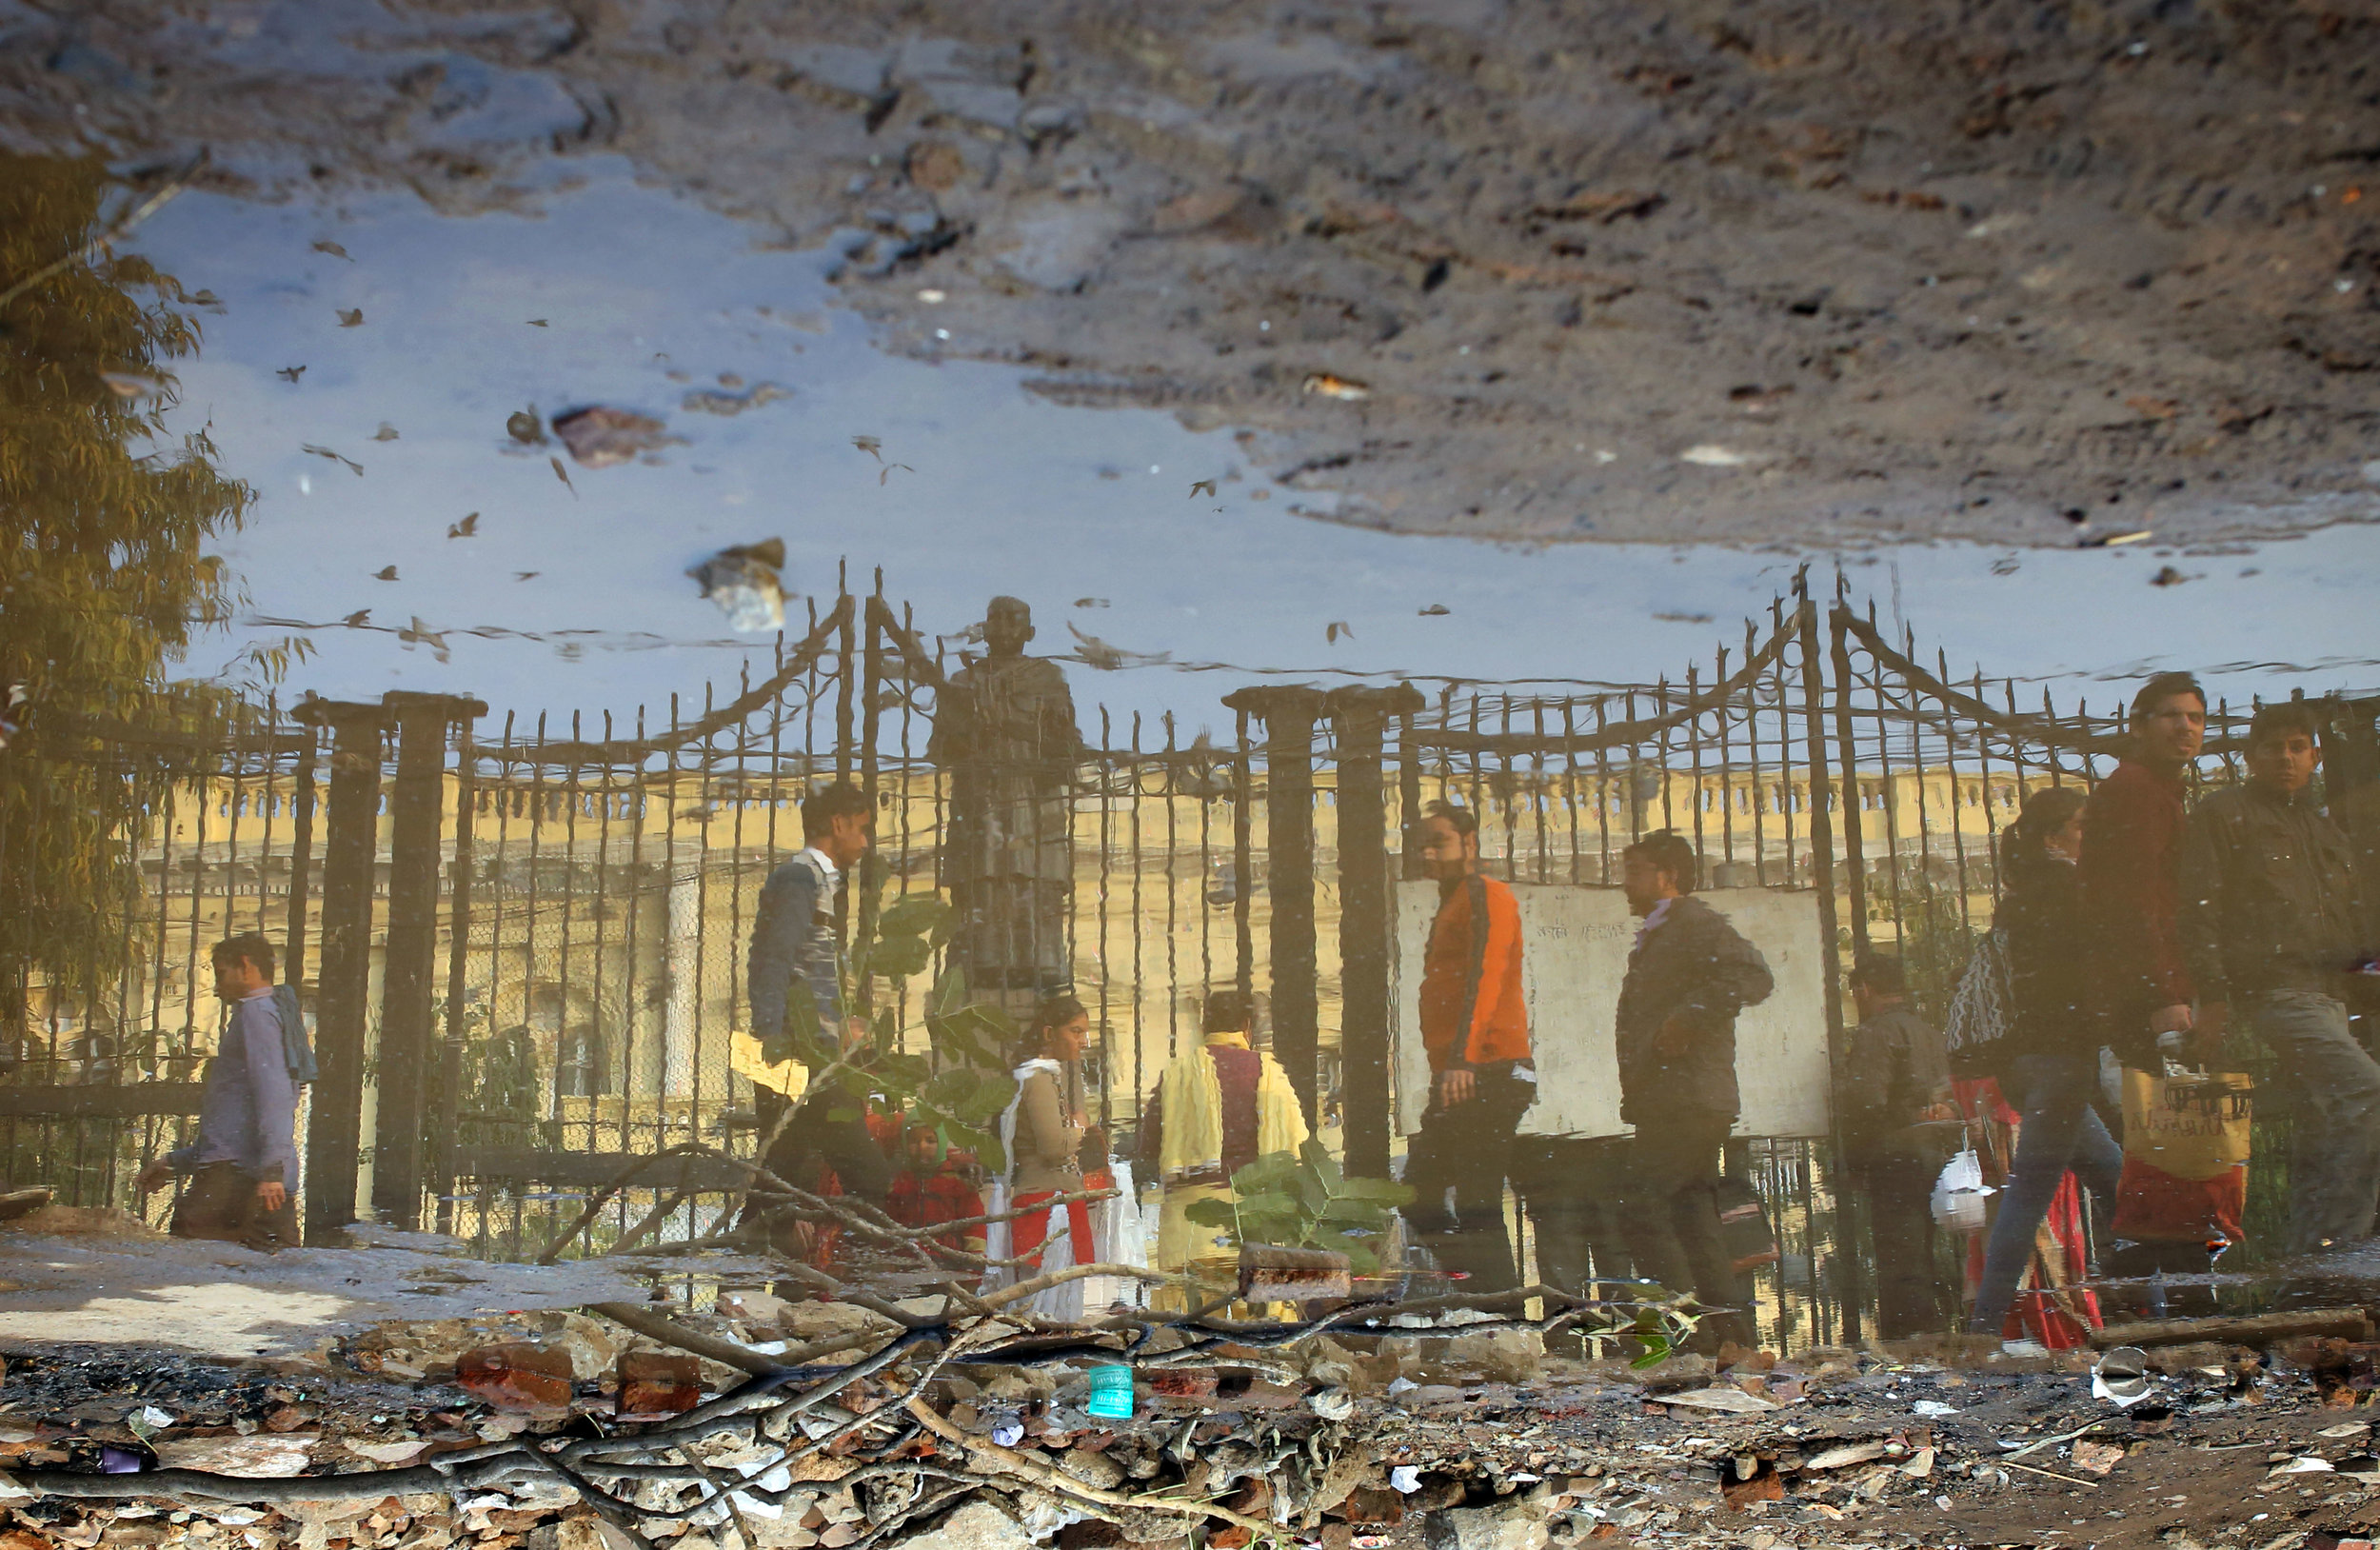 Passers by are pictured reflected in a puddle outside the Gandhi Memorial at Old Delhi's Town Hall, India